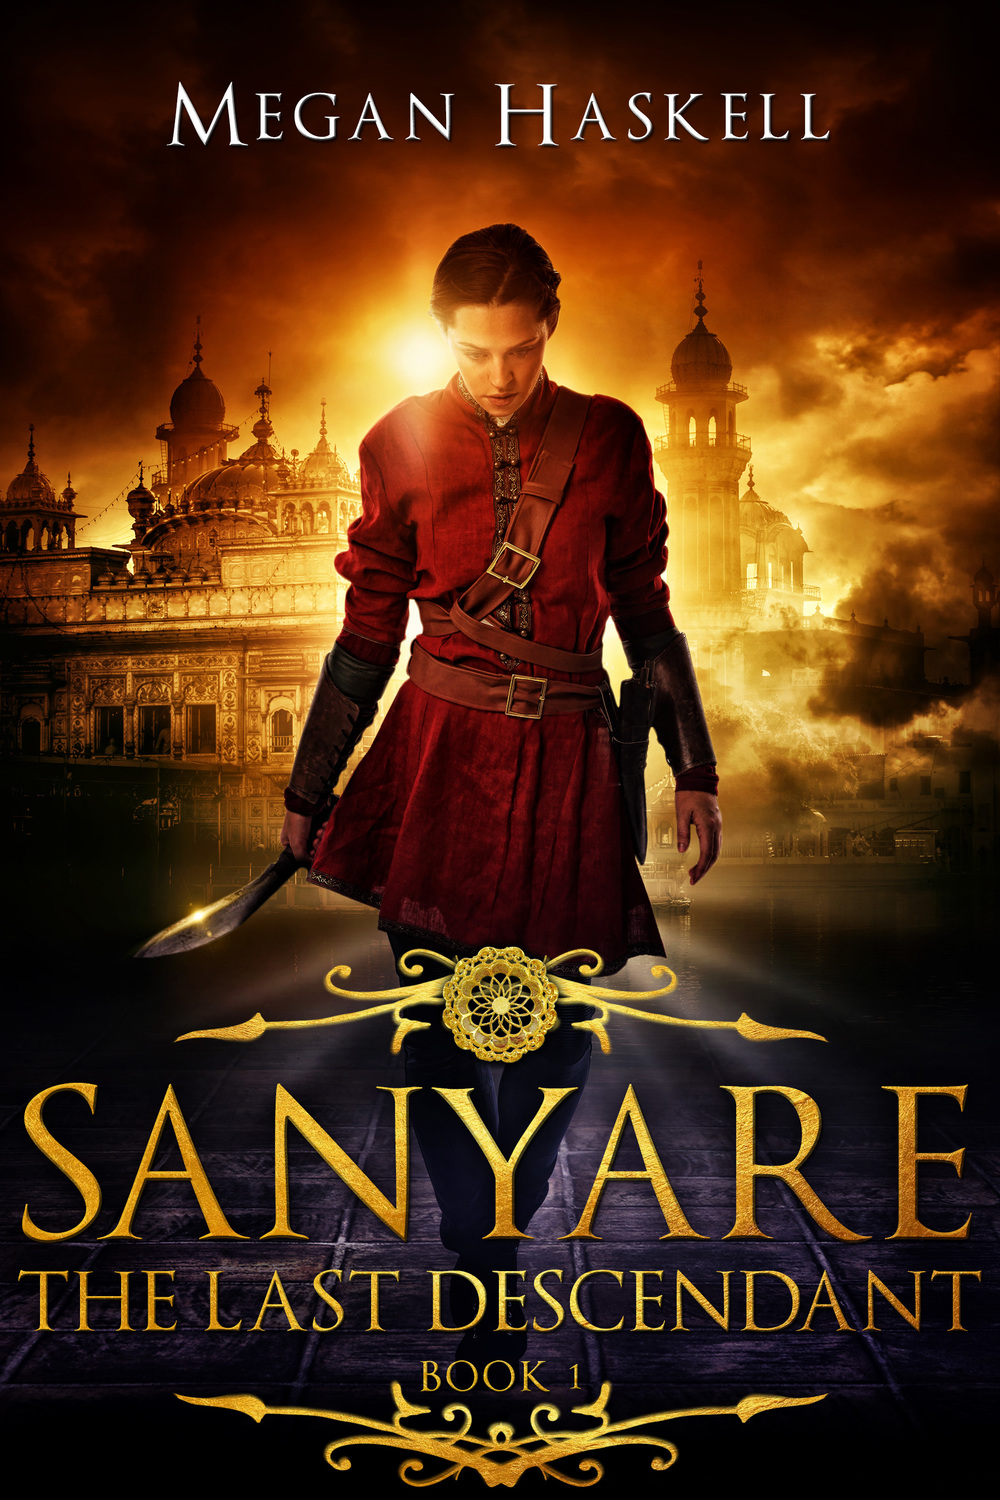 Boom!  Sanyare: The Last Descendant  has a new look!